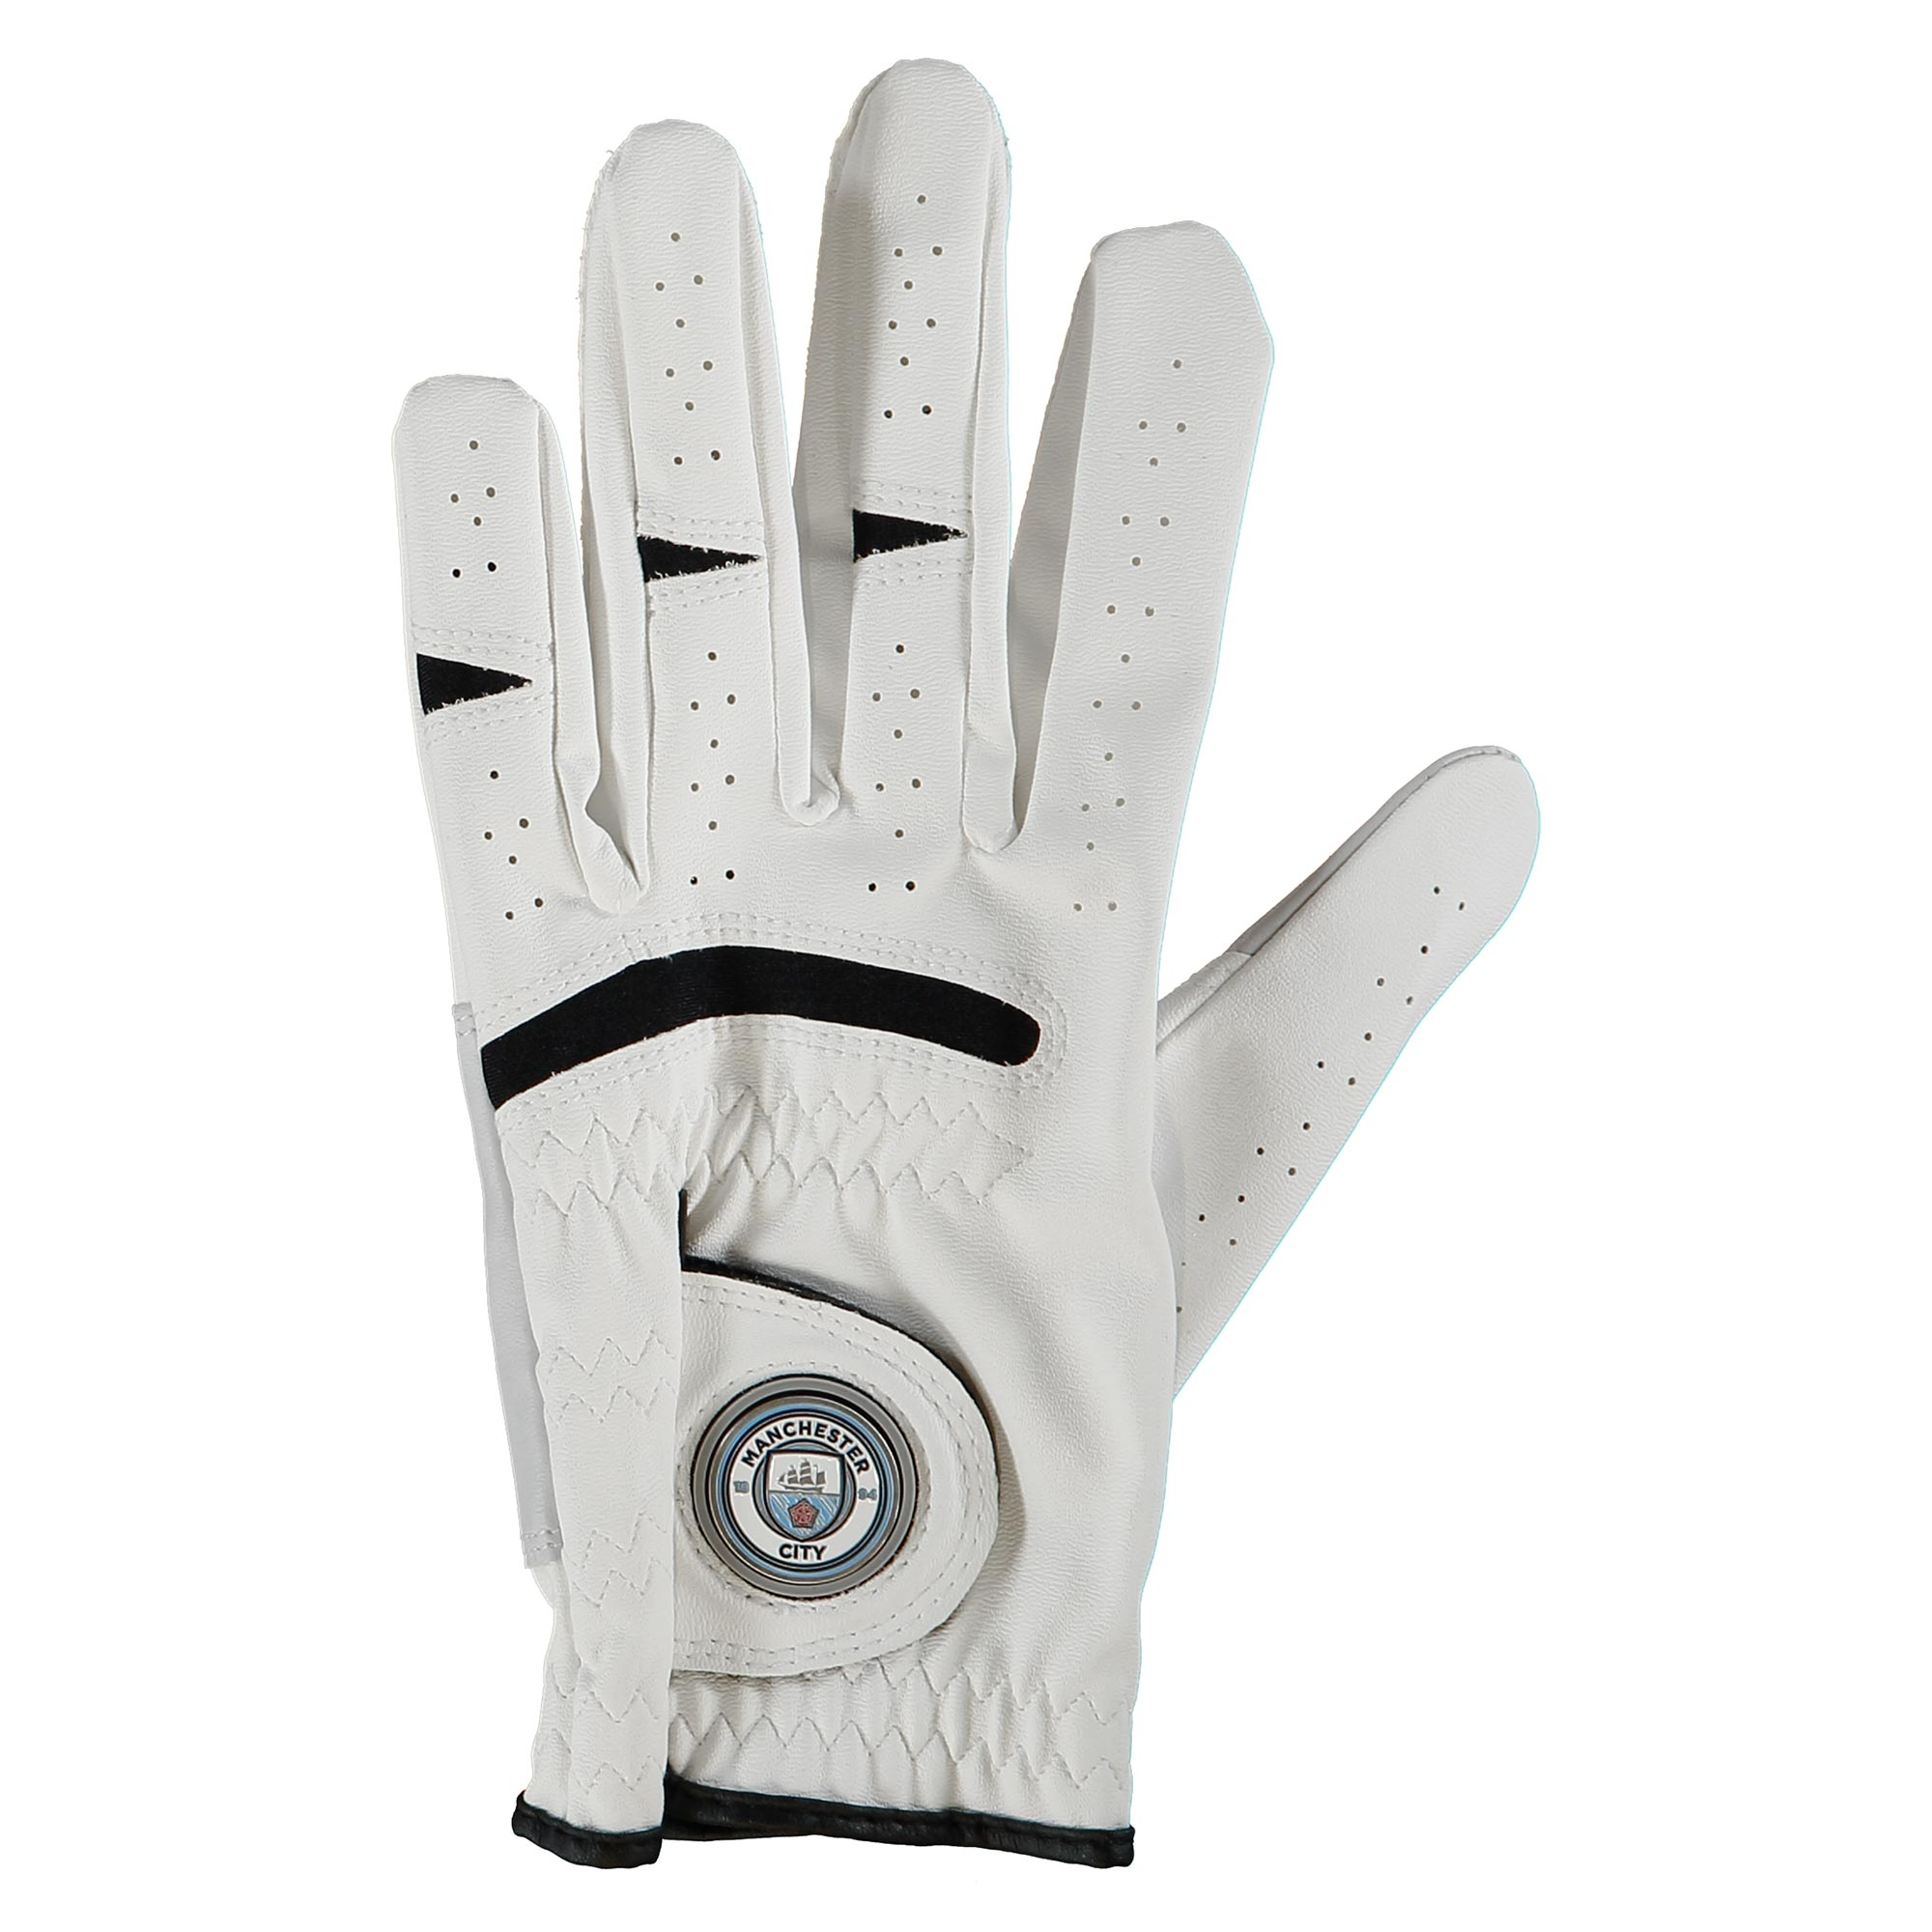 Manchester City Golf Glove & Ball Marker